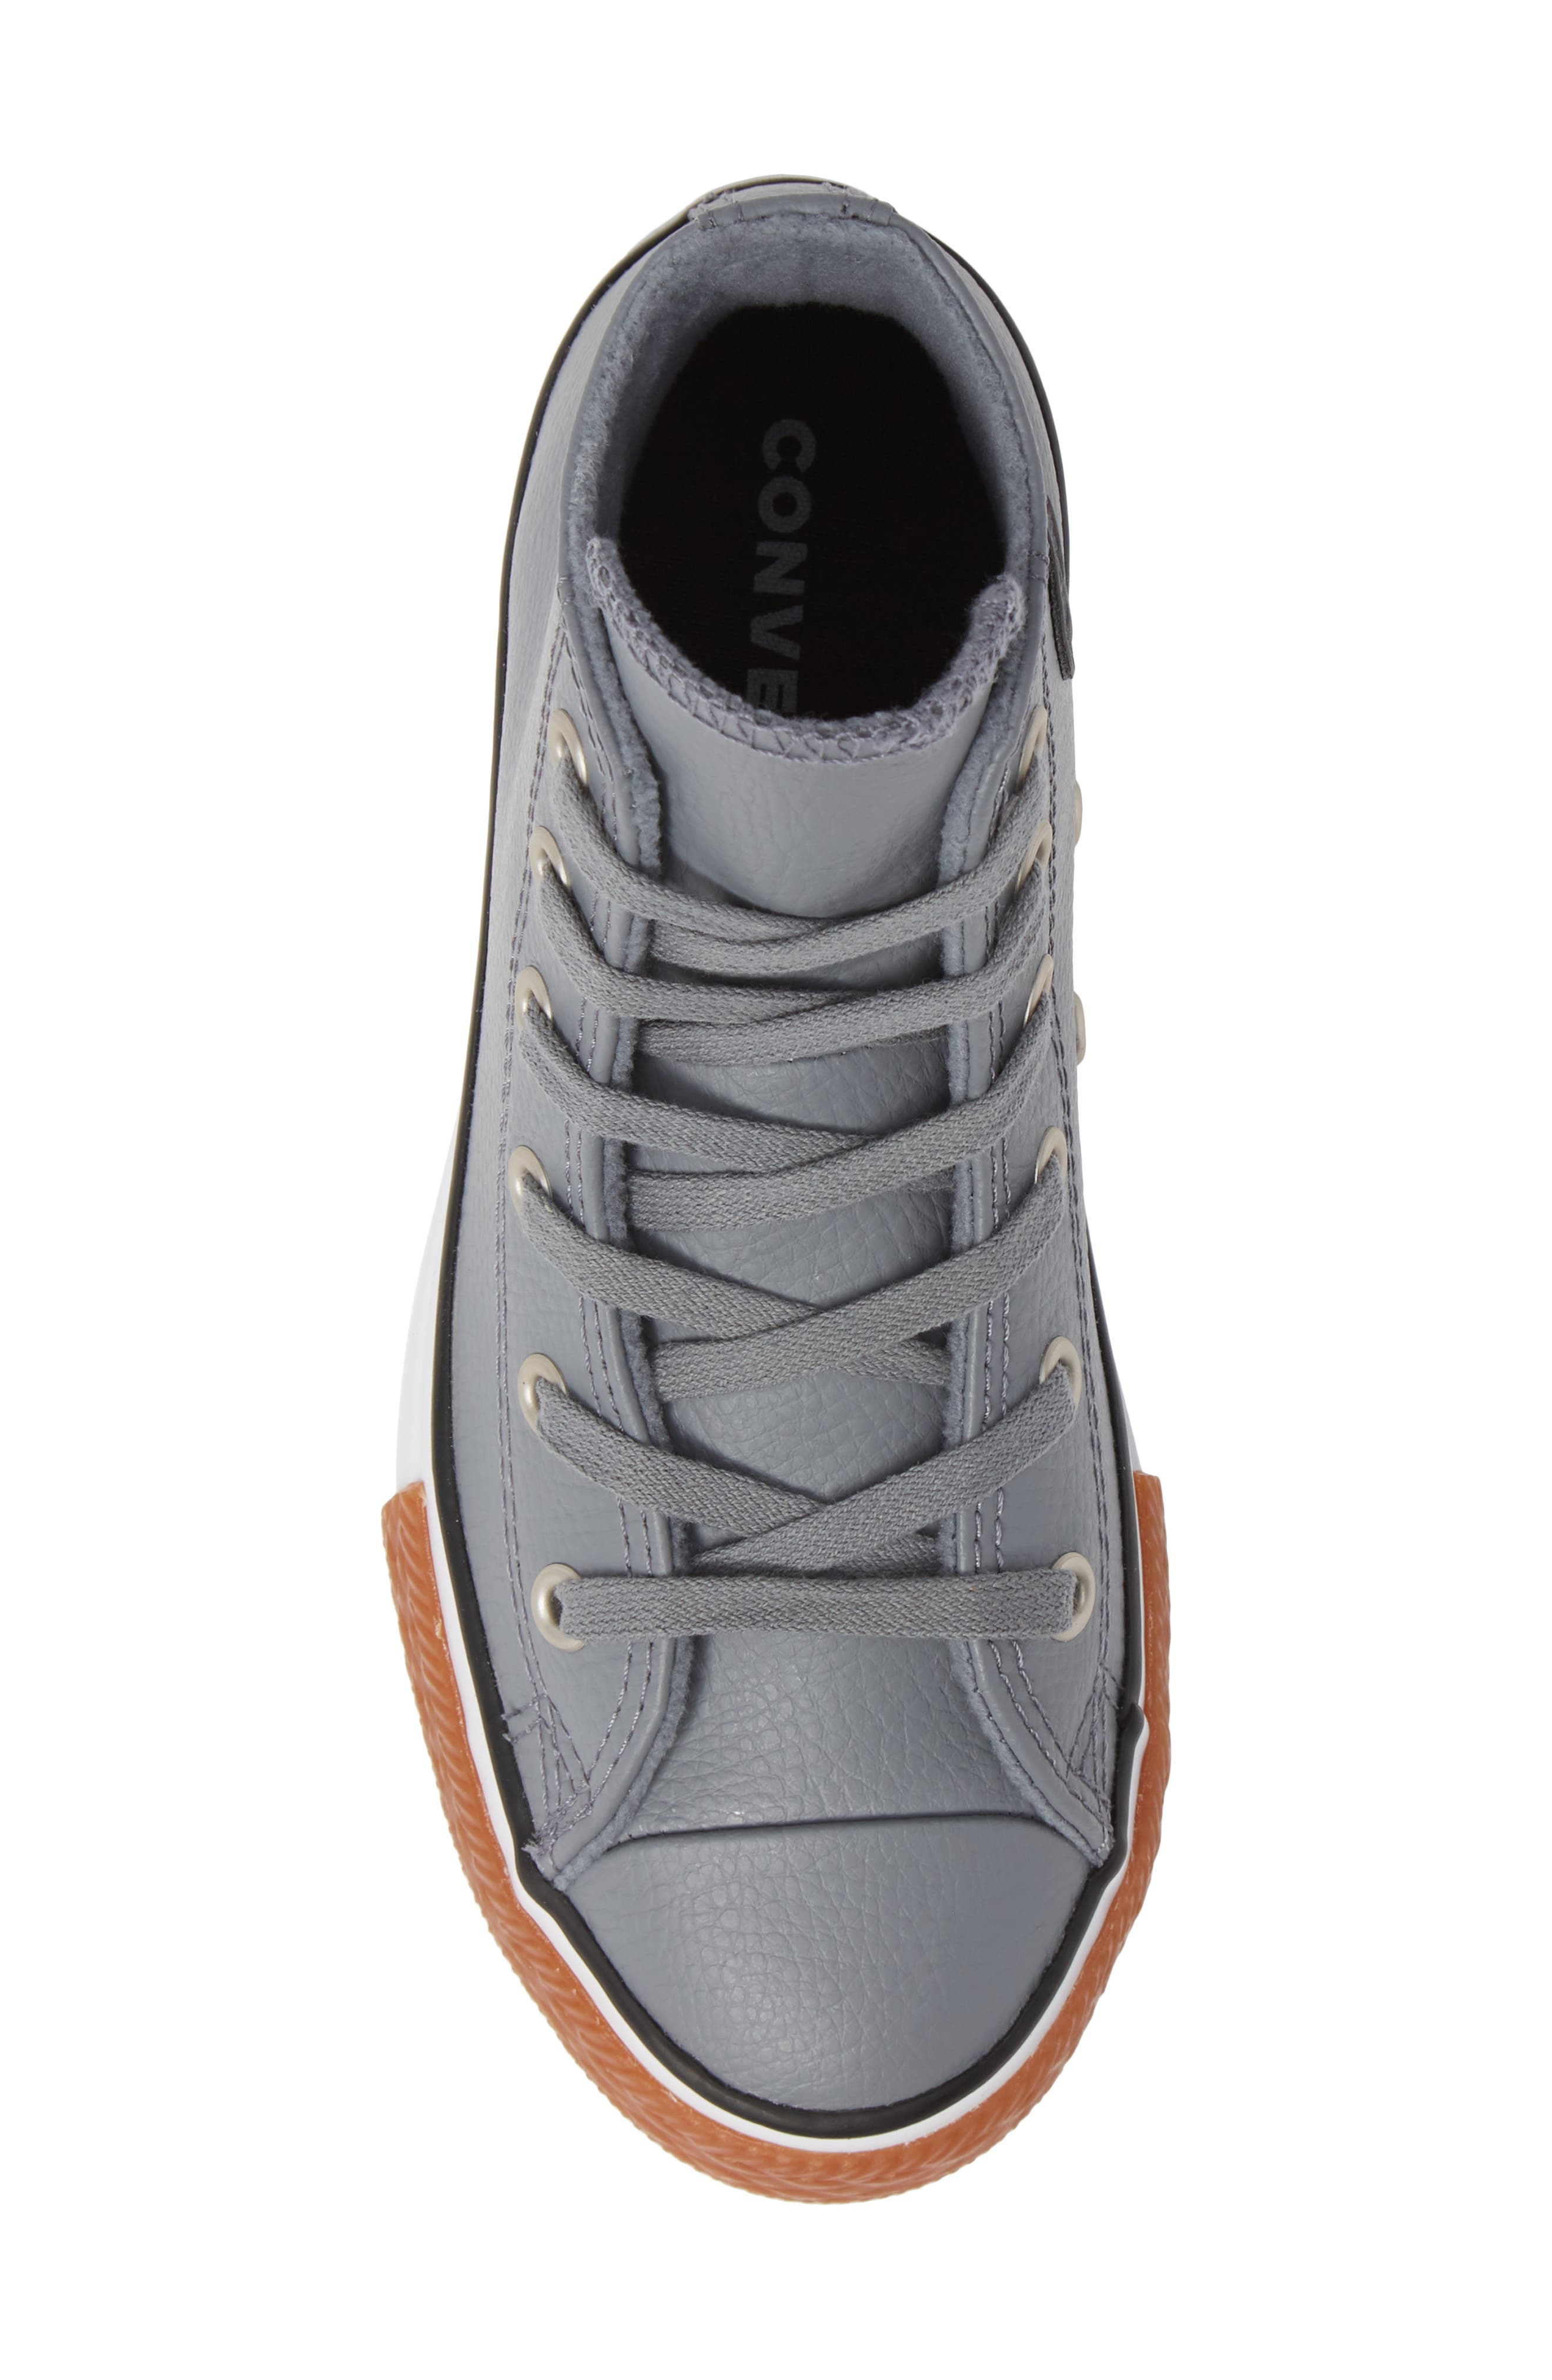 Chuck Taylor<sup>®</sup> All Star<sup>®</sup> No Gum In Class Leather High Top Sneaker,                             Alternate thumbnail 5, color,                             COOL GREY